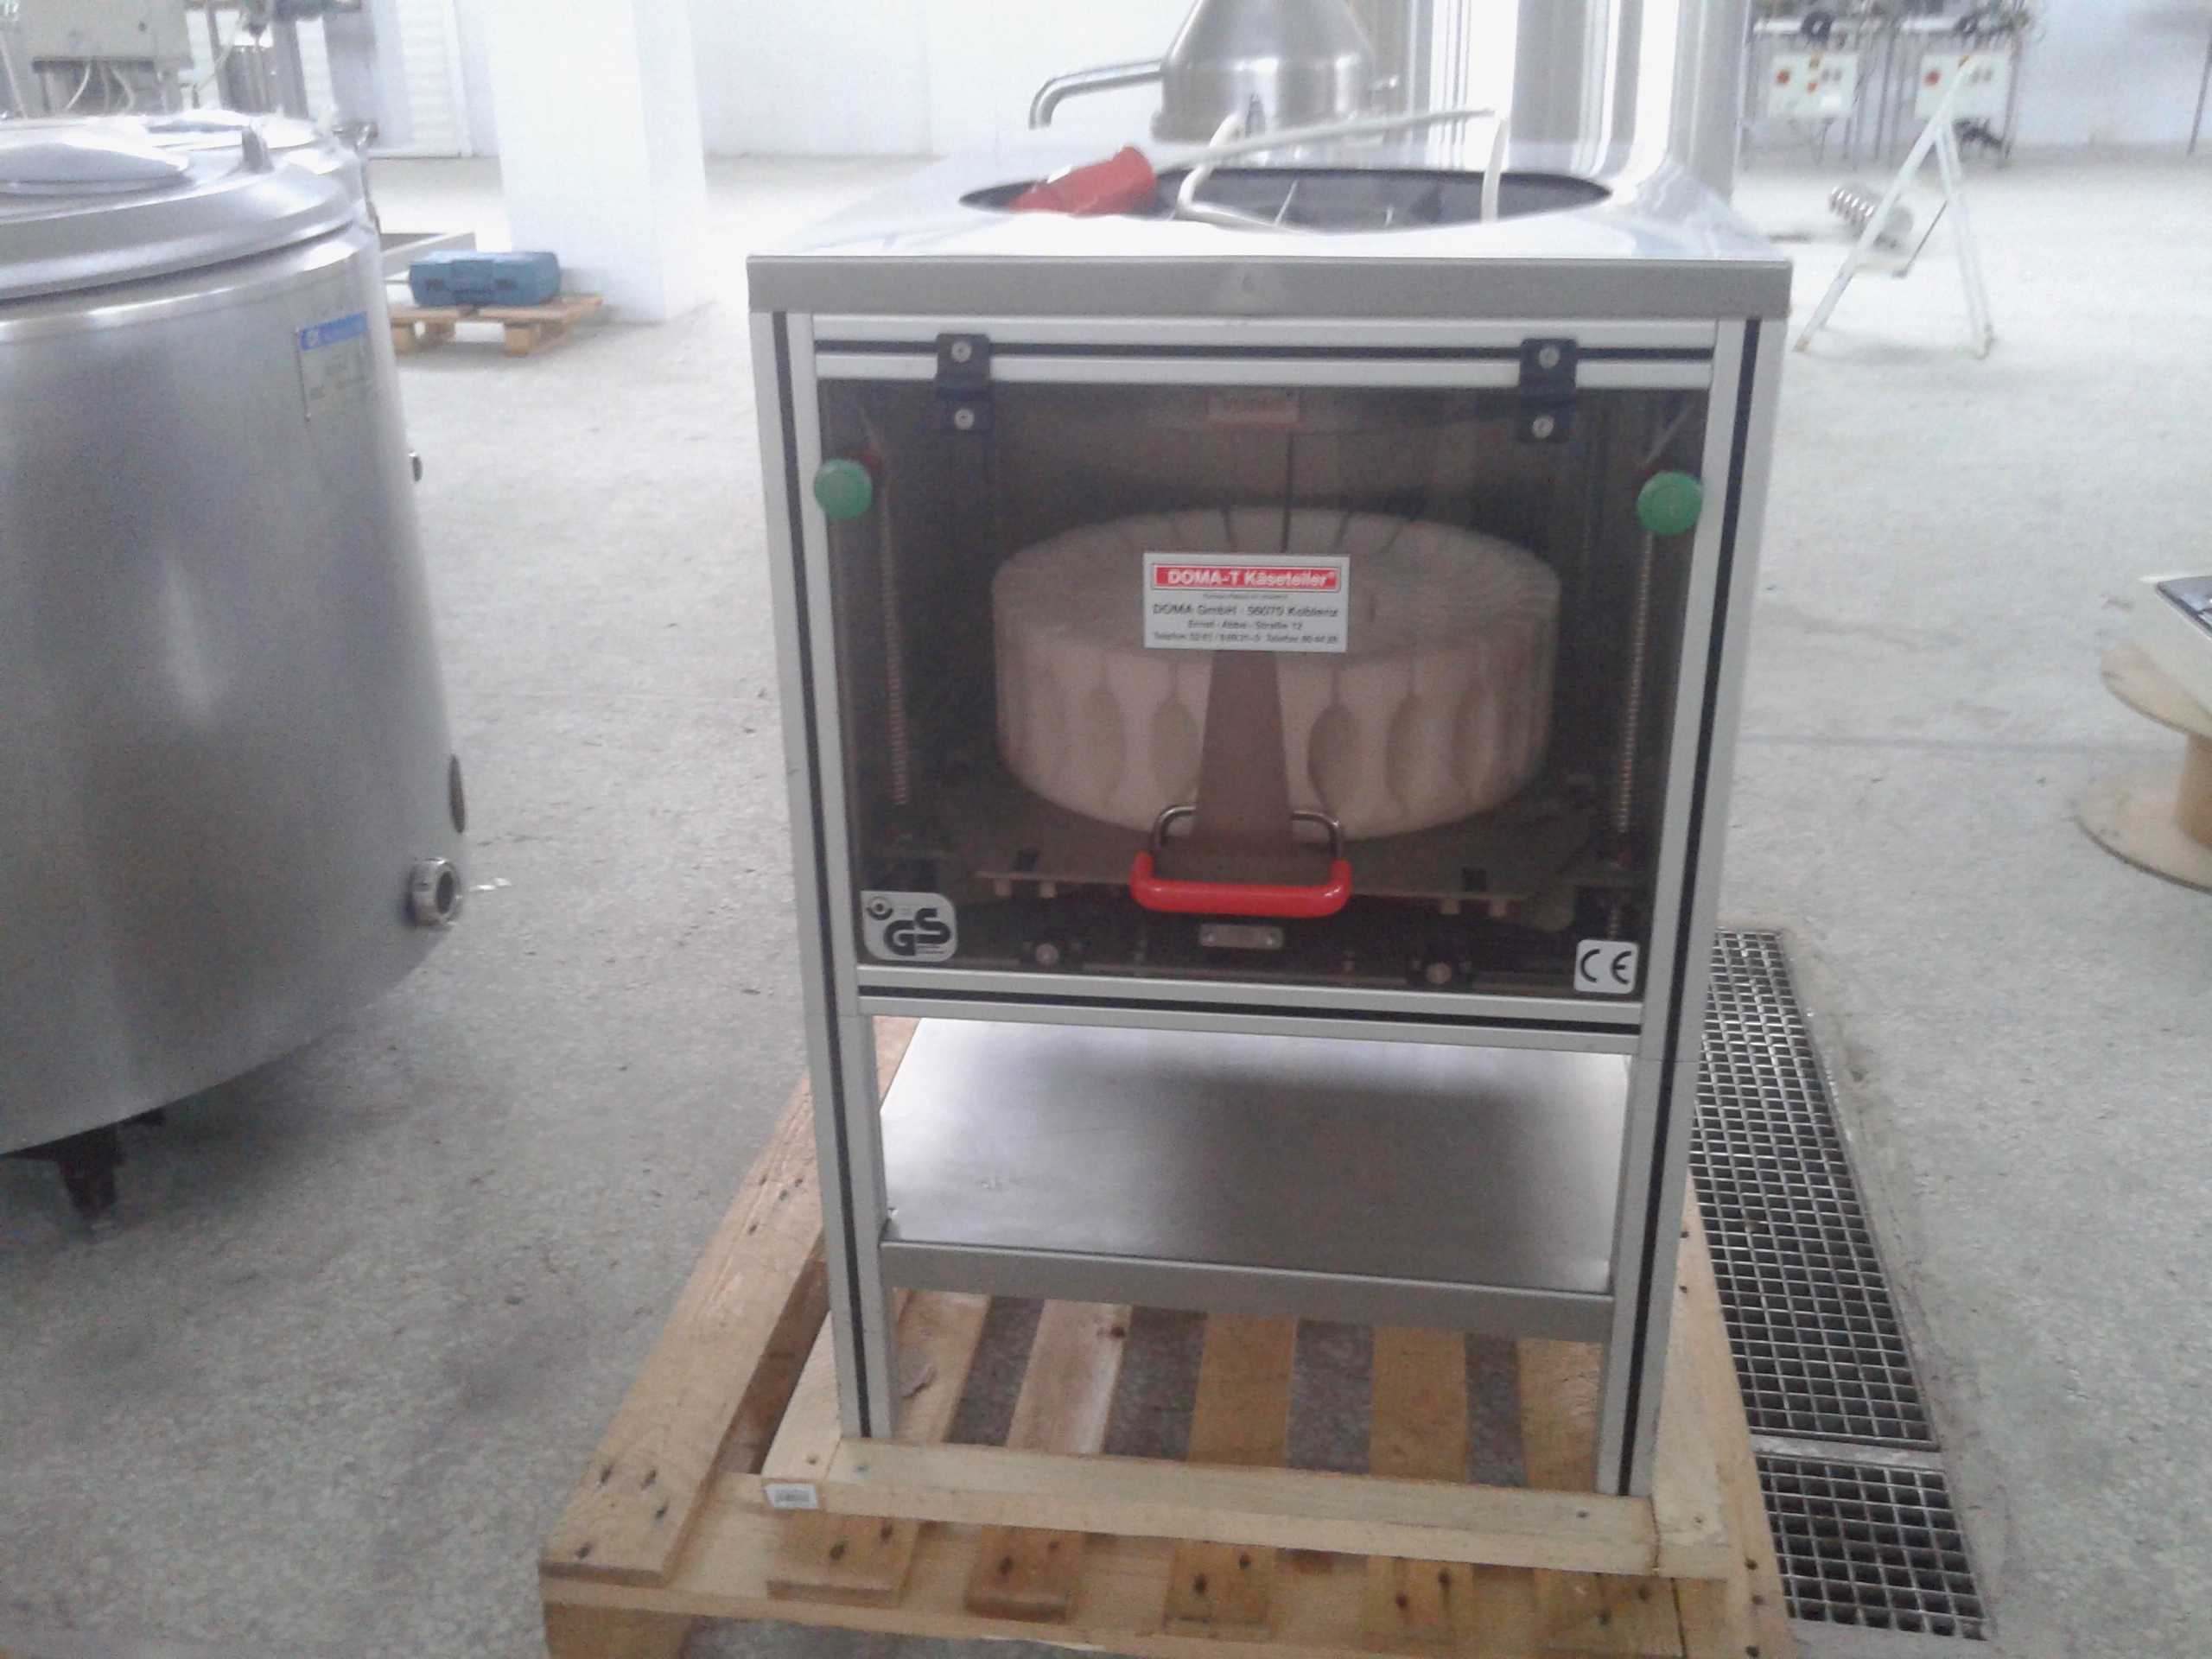 Lot 25 - DOMA-T Käseteilmaschine GS Cheese Cutter, Fully Enclosed in Safety Cabinet, Cuts and Portions Round